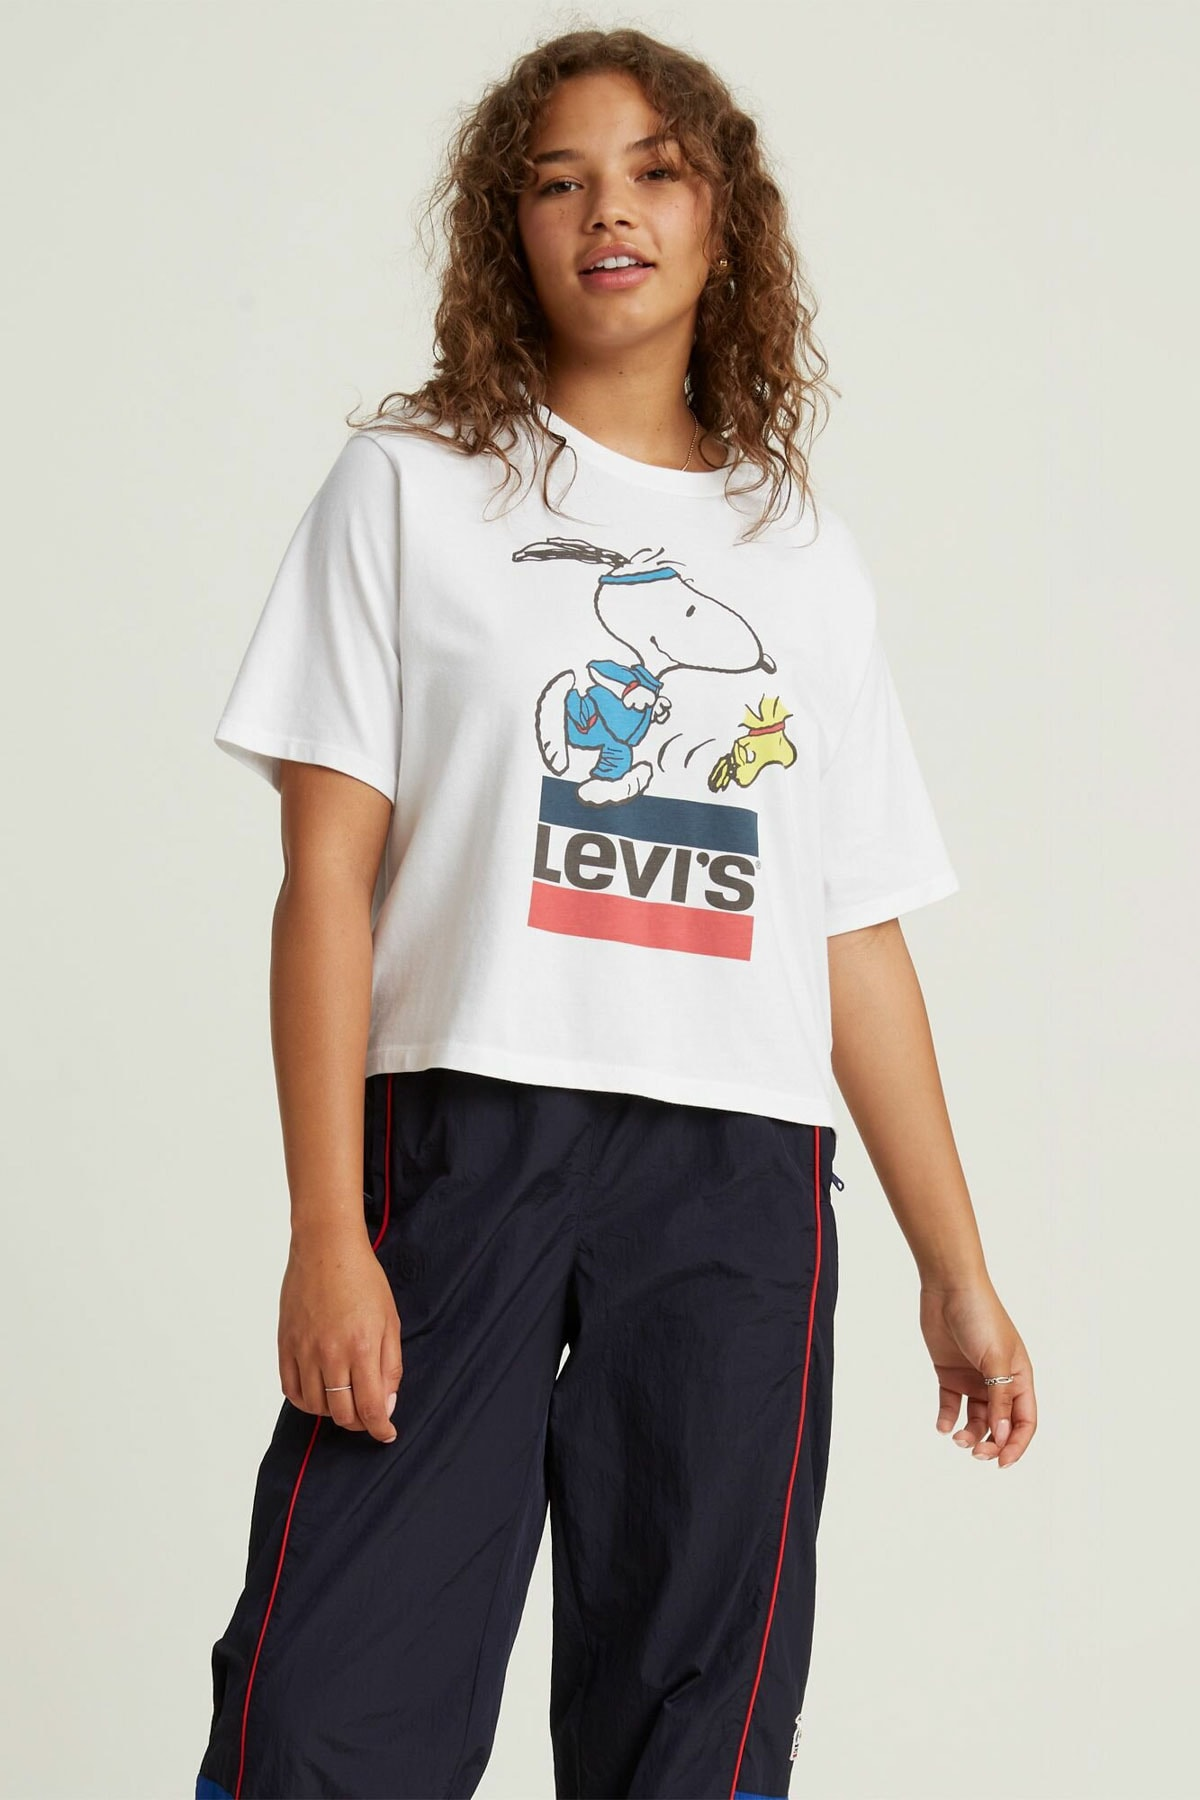 Levi's Graphıc Boxy Tee Snoopy Torch Runner Wh 1